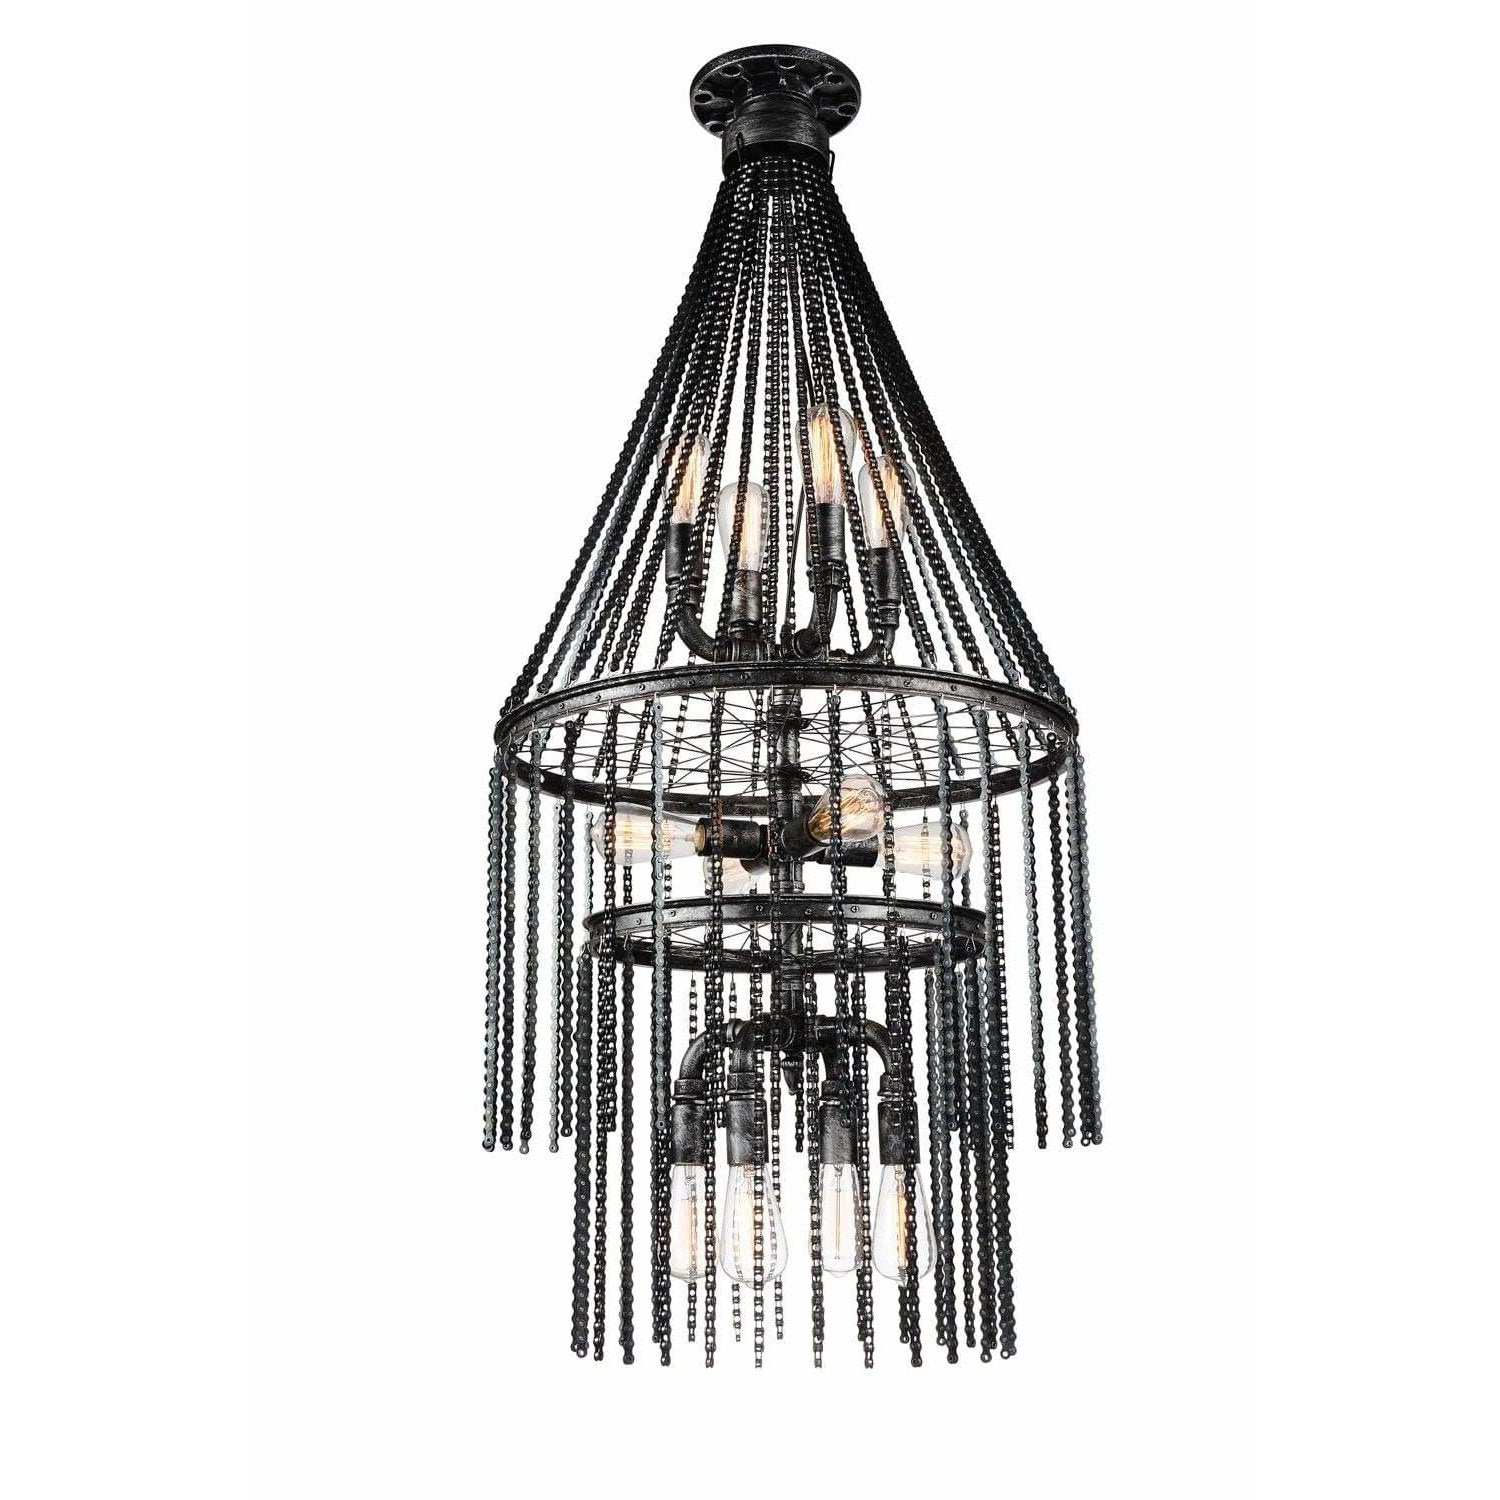 CWI Lighting Chandeliers Gray Kala 12 Light Chandelier with Gray finish by CWI Lighting 9717P24-12-187